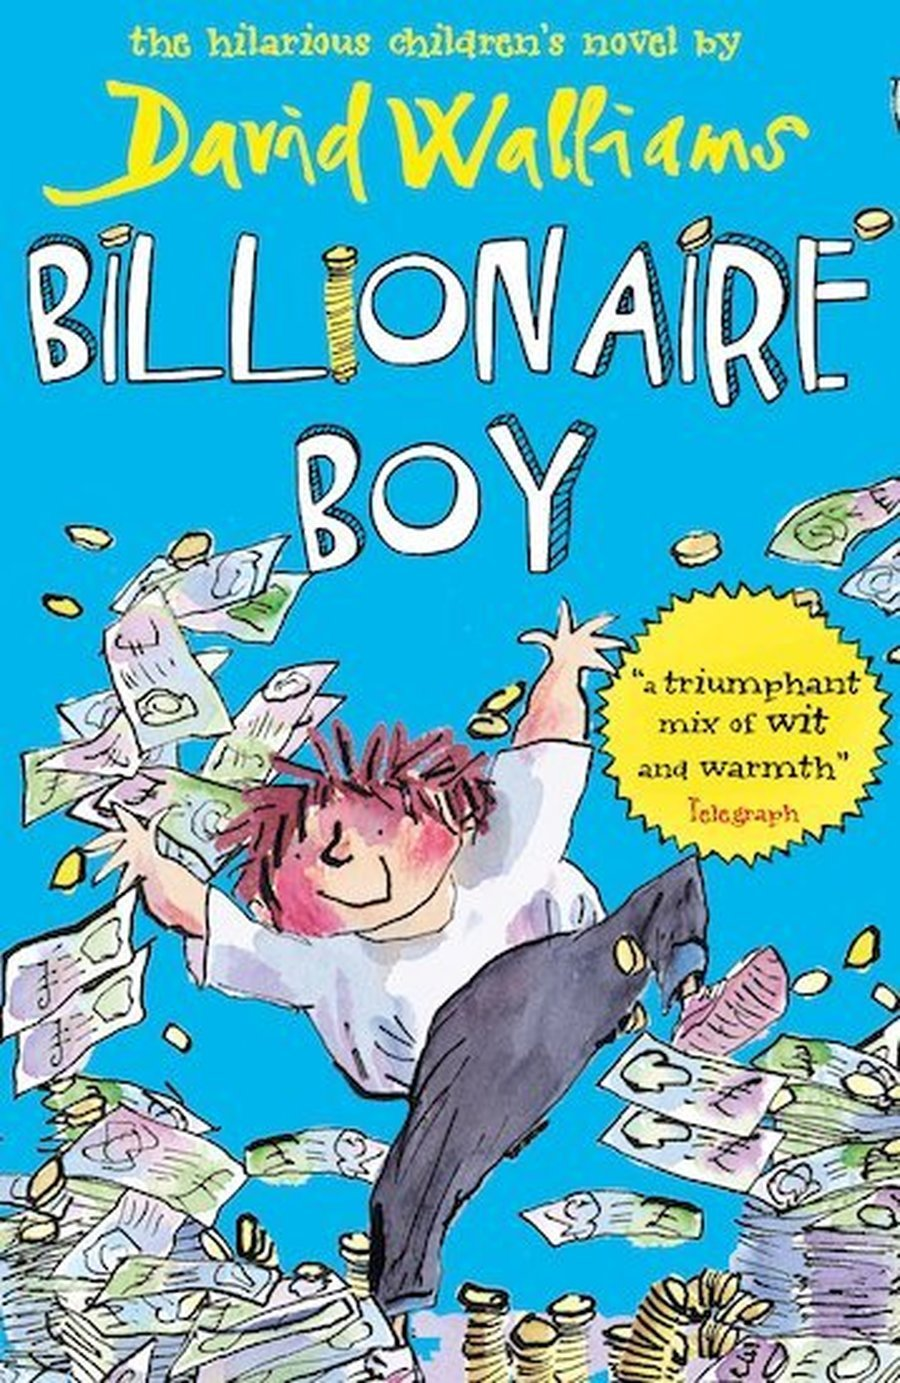 Billionaire Boy - David Walliams